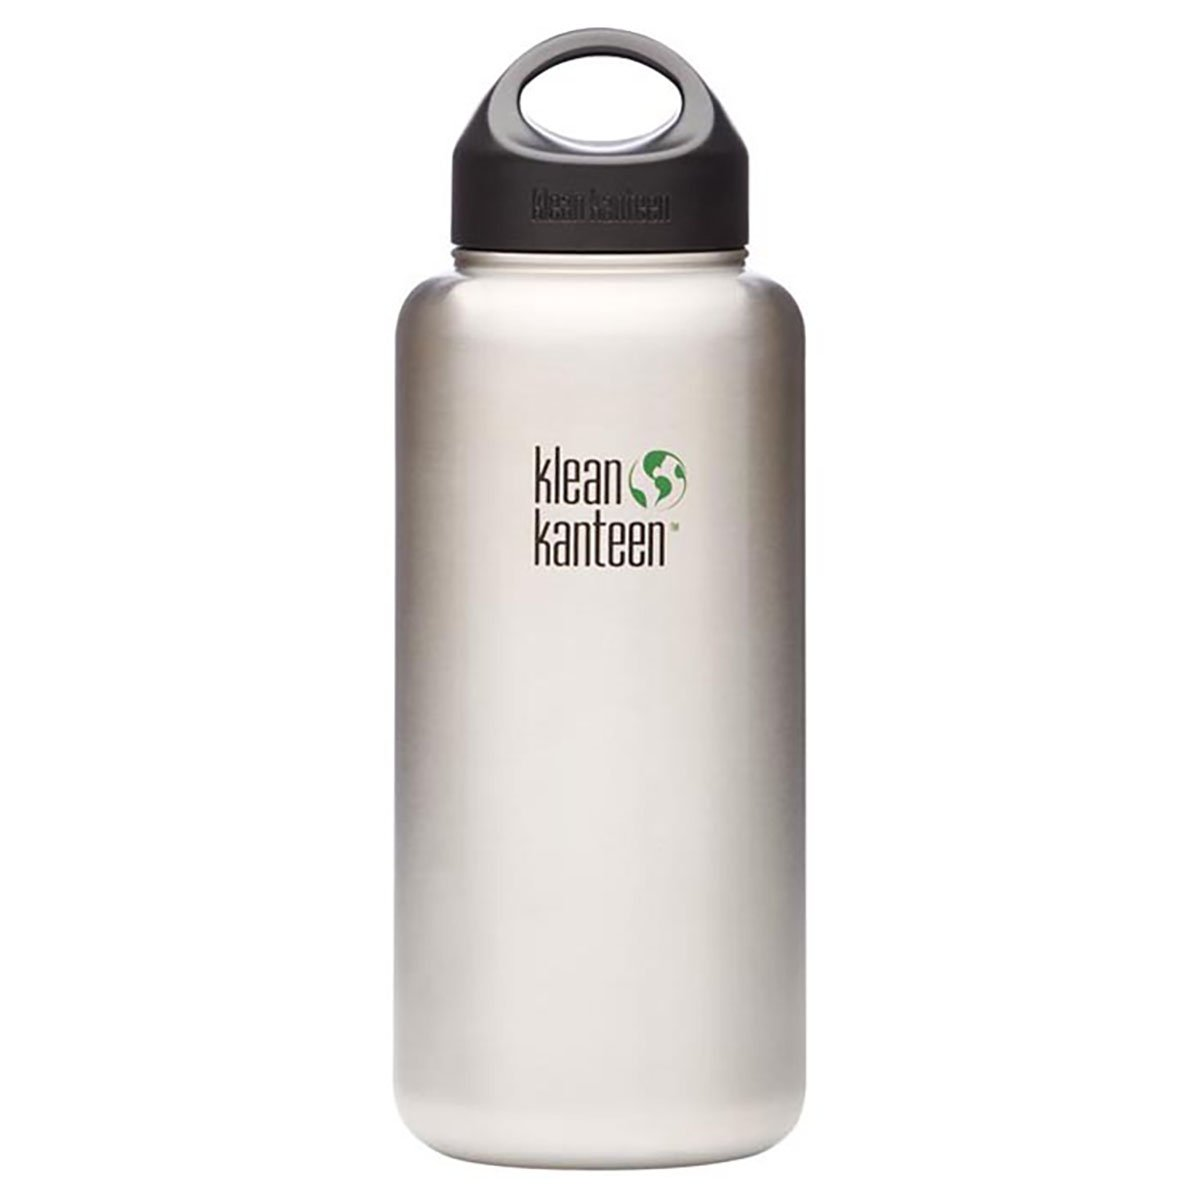 Klean Kanteen Wide Mouth Bottle - 27oz, 40oz, 64oz